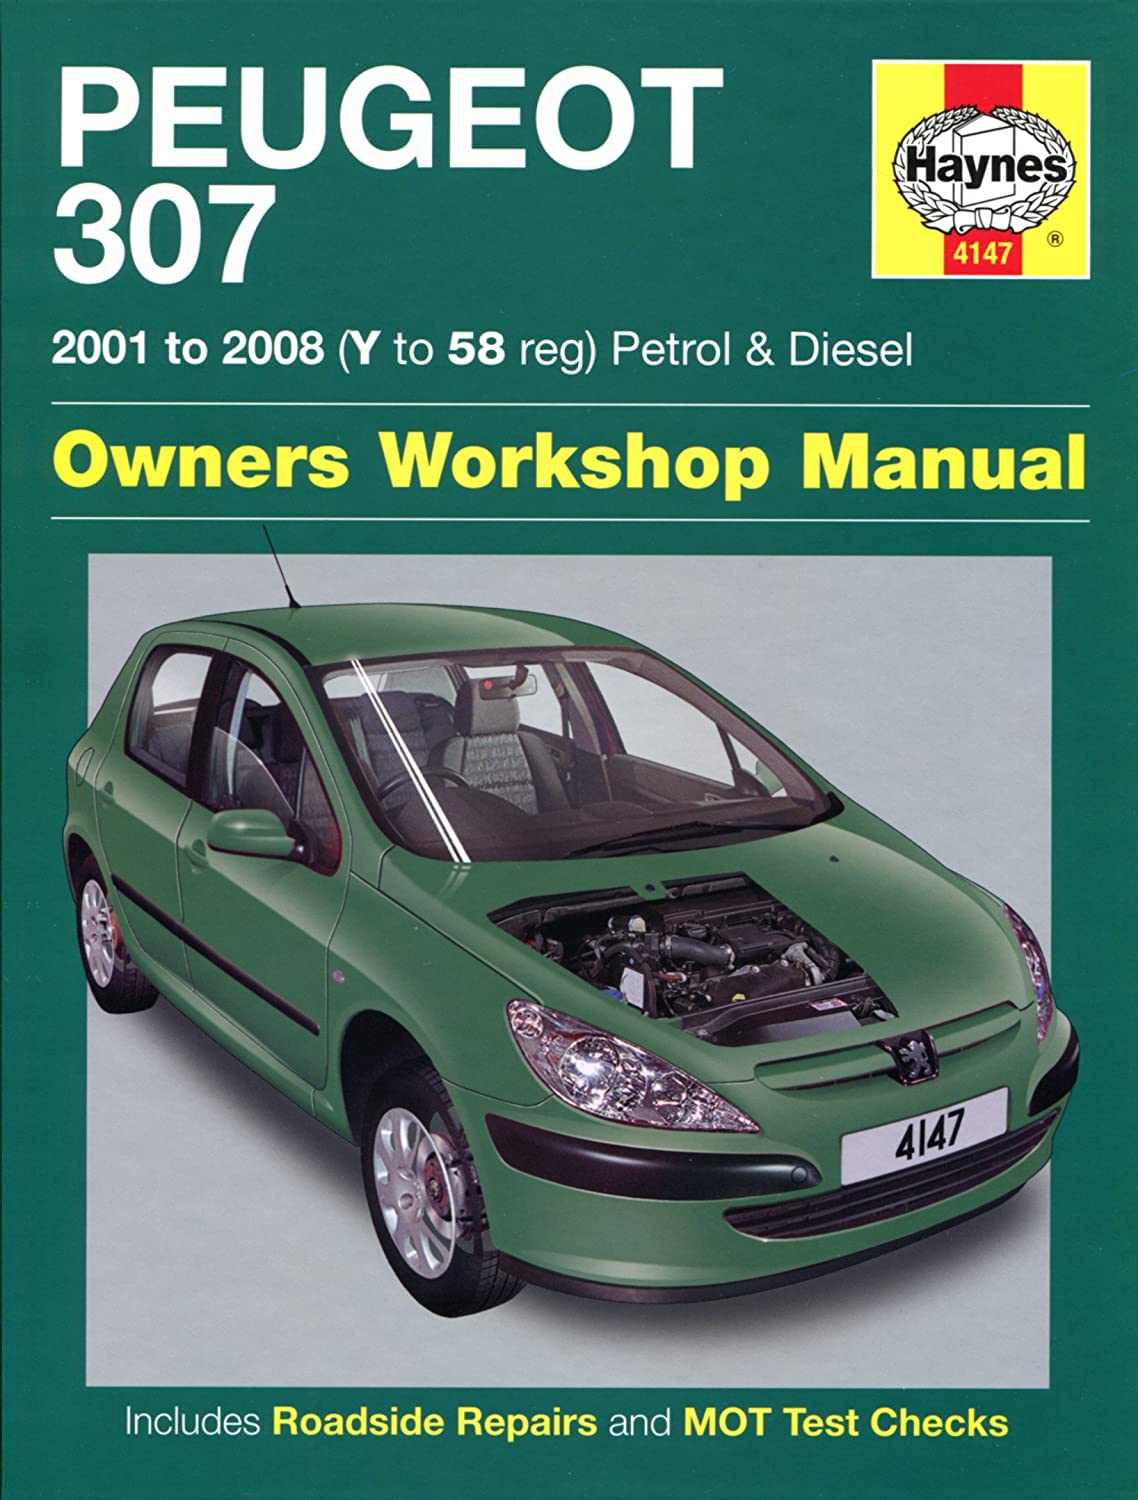 Peugeot 307 Repair Manual Haynes Manual Service Manual Workshop Manual  2001-2008